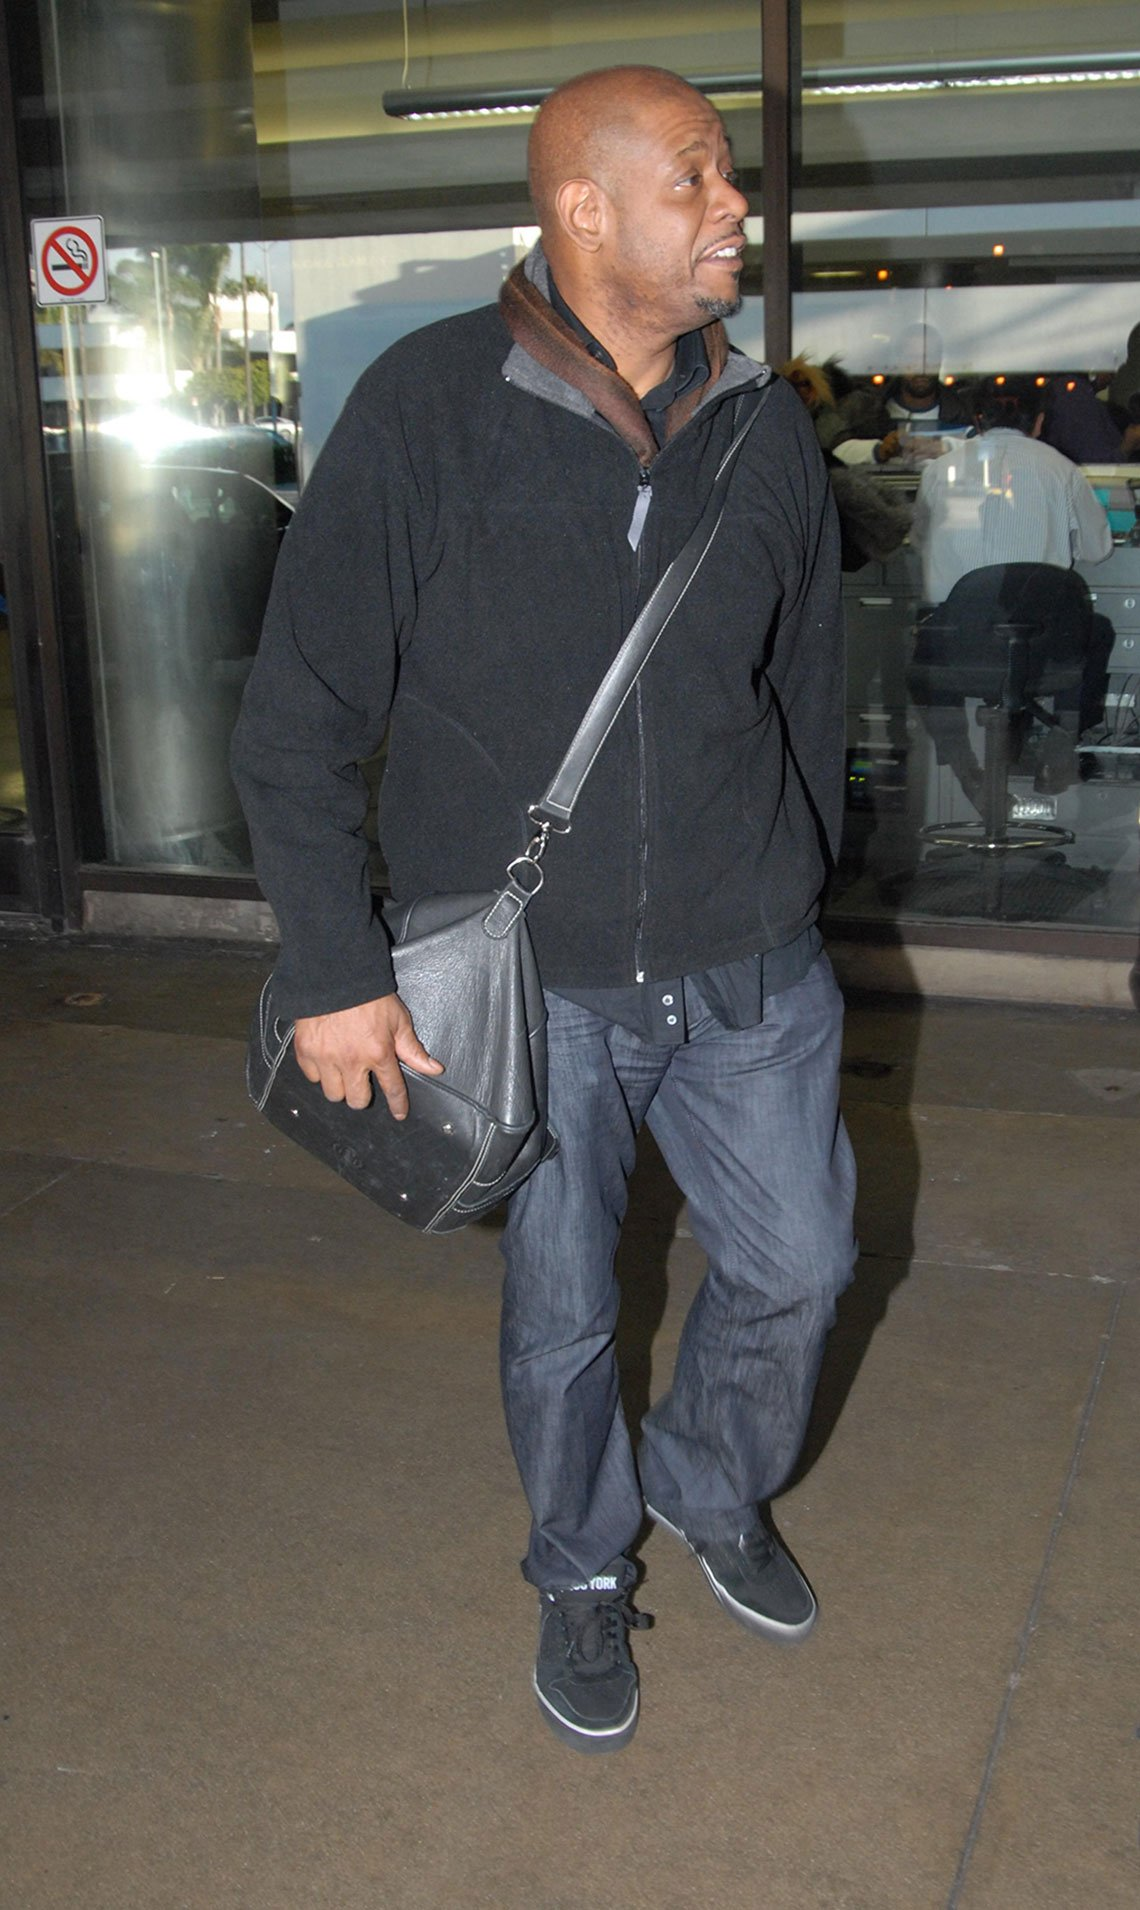 item 3, Gallery image. Forest Whitaker in relaxed straight jeans, button-down and fleece